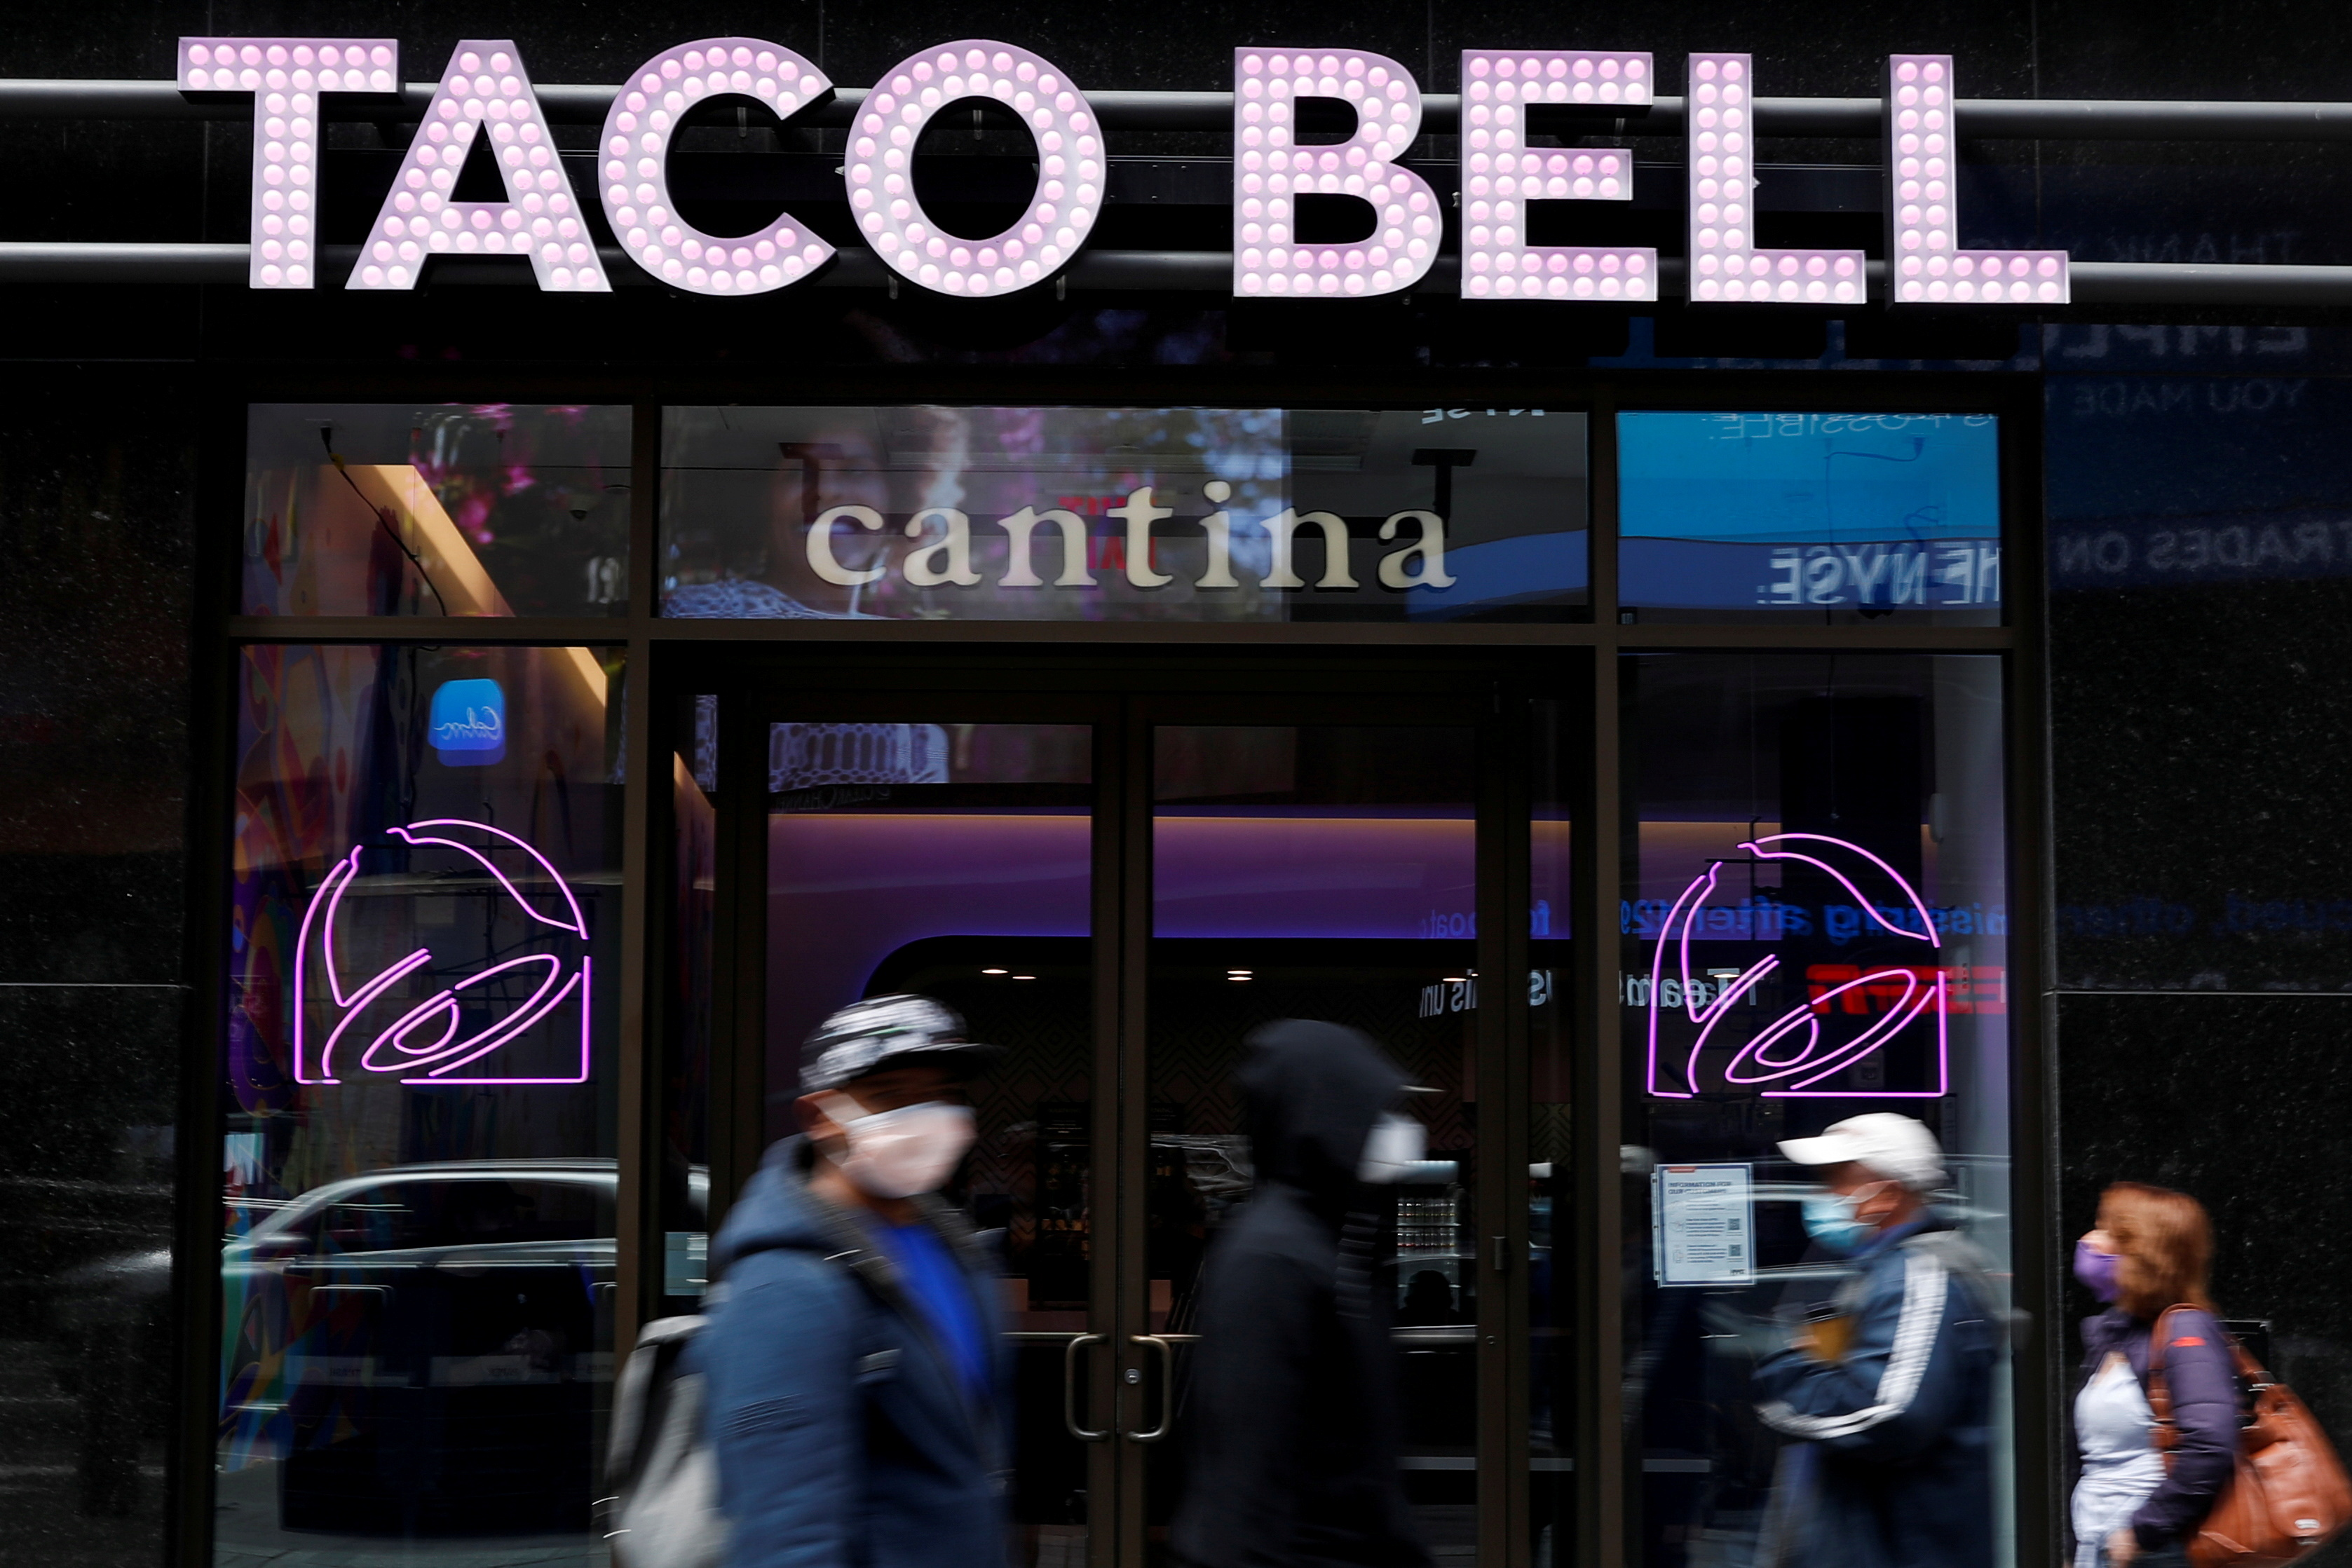 People walk by Taco Bell's first digital-only U.S. cantina location at Times Square in New York City, U.S., April 14, 2021. REUTERS/Shannon Stapleton/File Photo